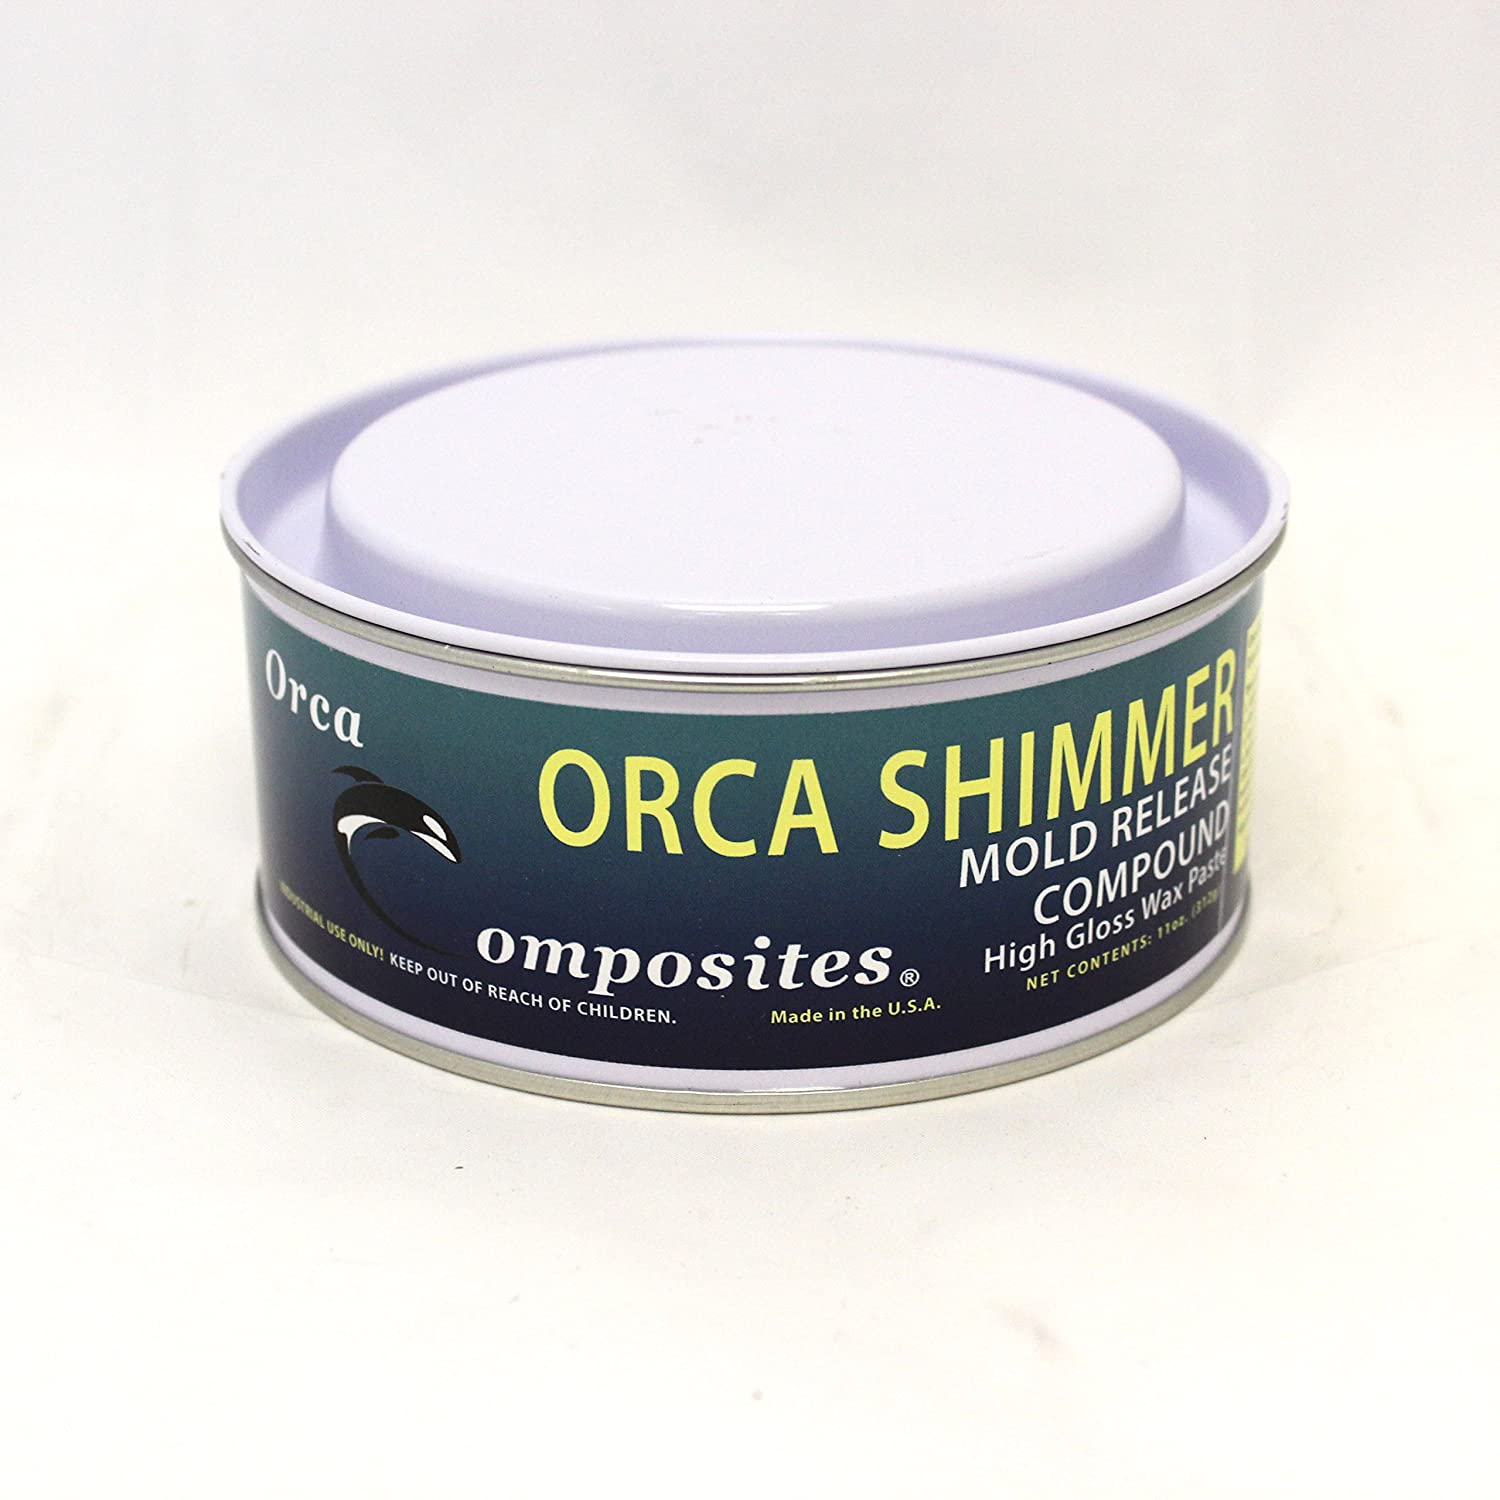 Orca Shimmer Mold Release Compound High Gloss Paste Wax Orca Composites